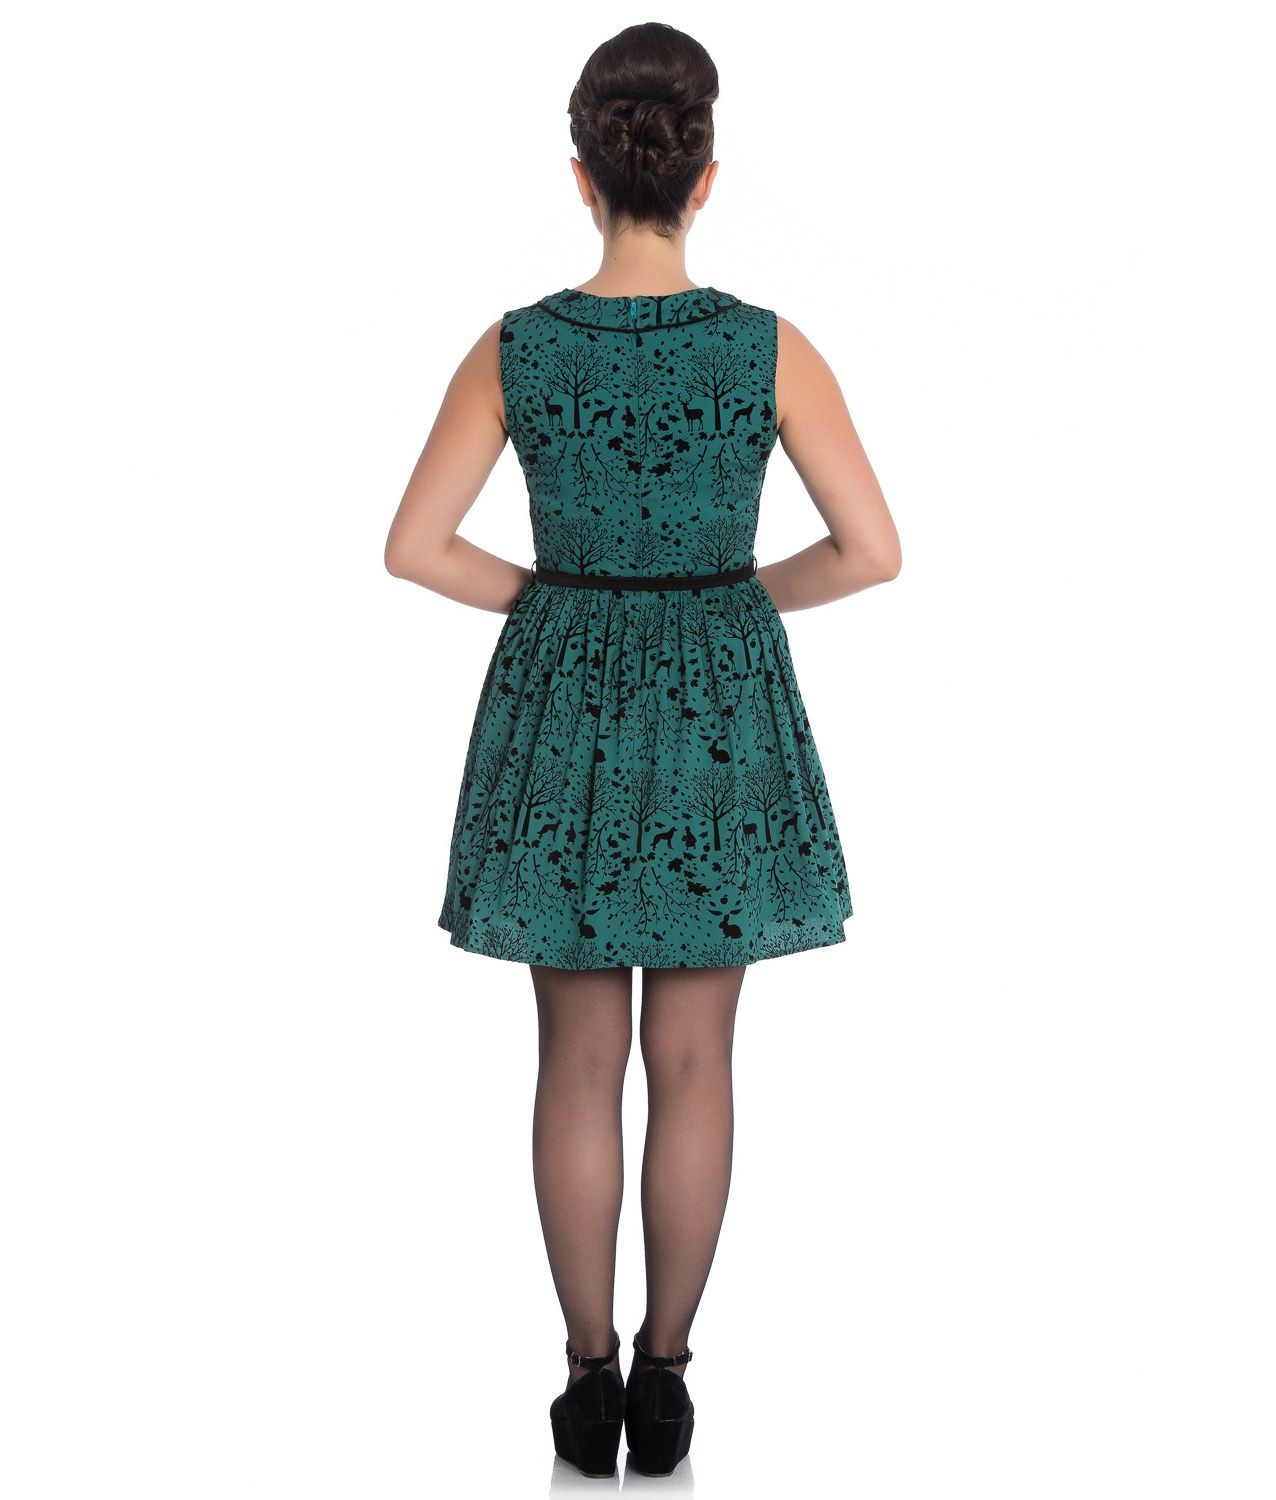 Hell-Bunny-50s-Mini-Skater-Dress-Woodland-Trees-SHERWOOD-Dark-Green-All-Sizes thumbnail 9